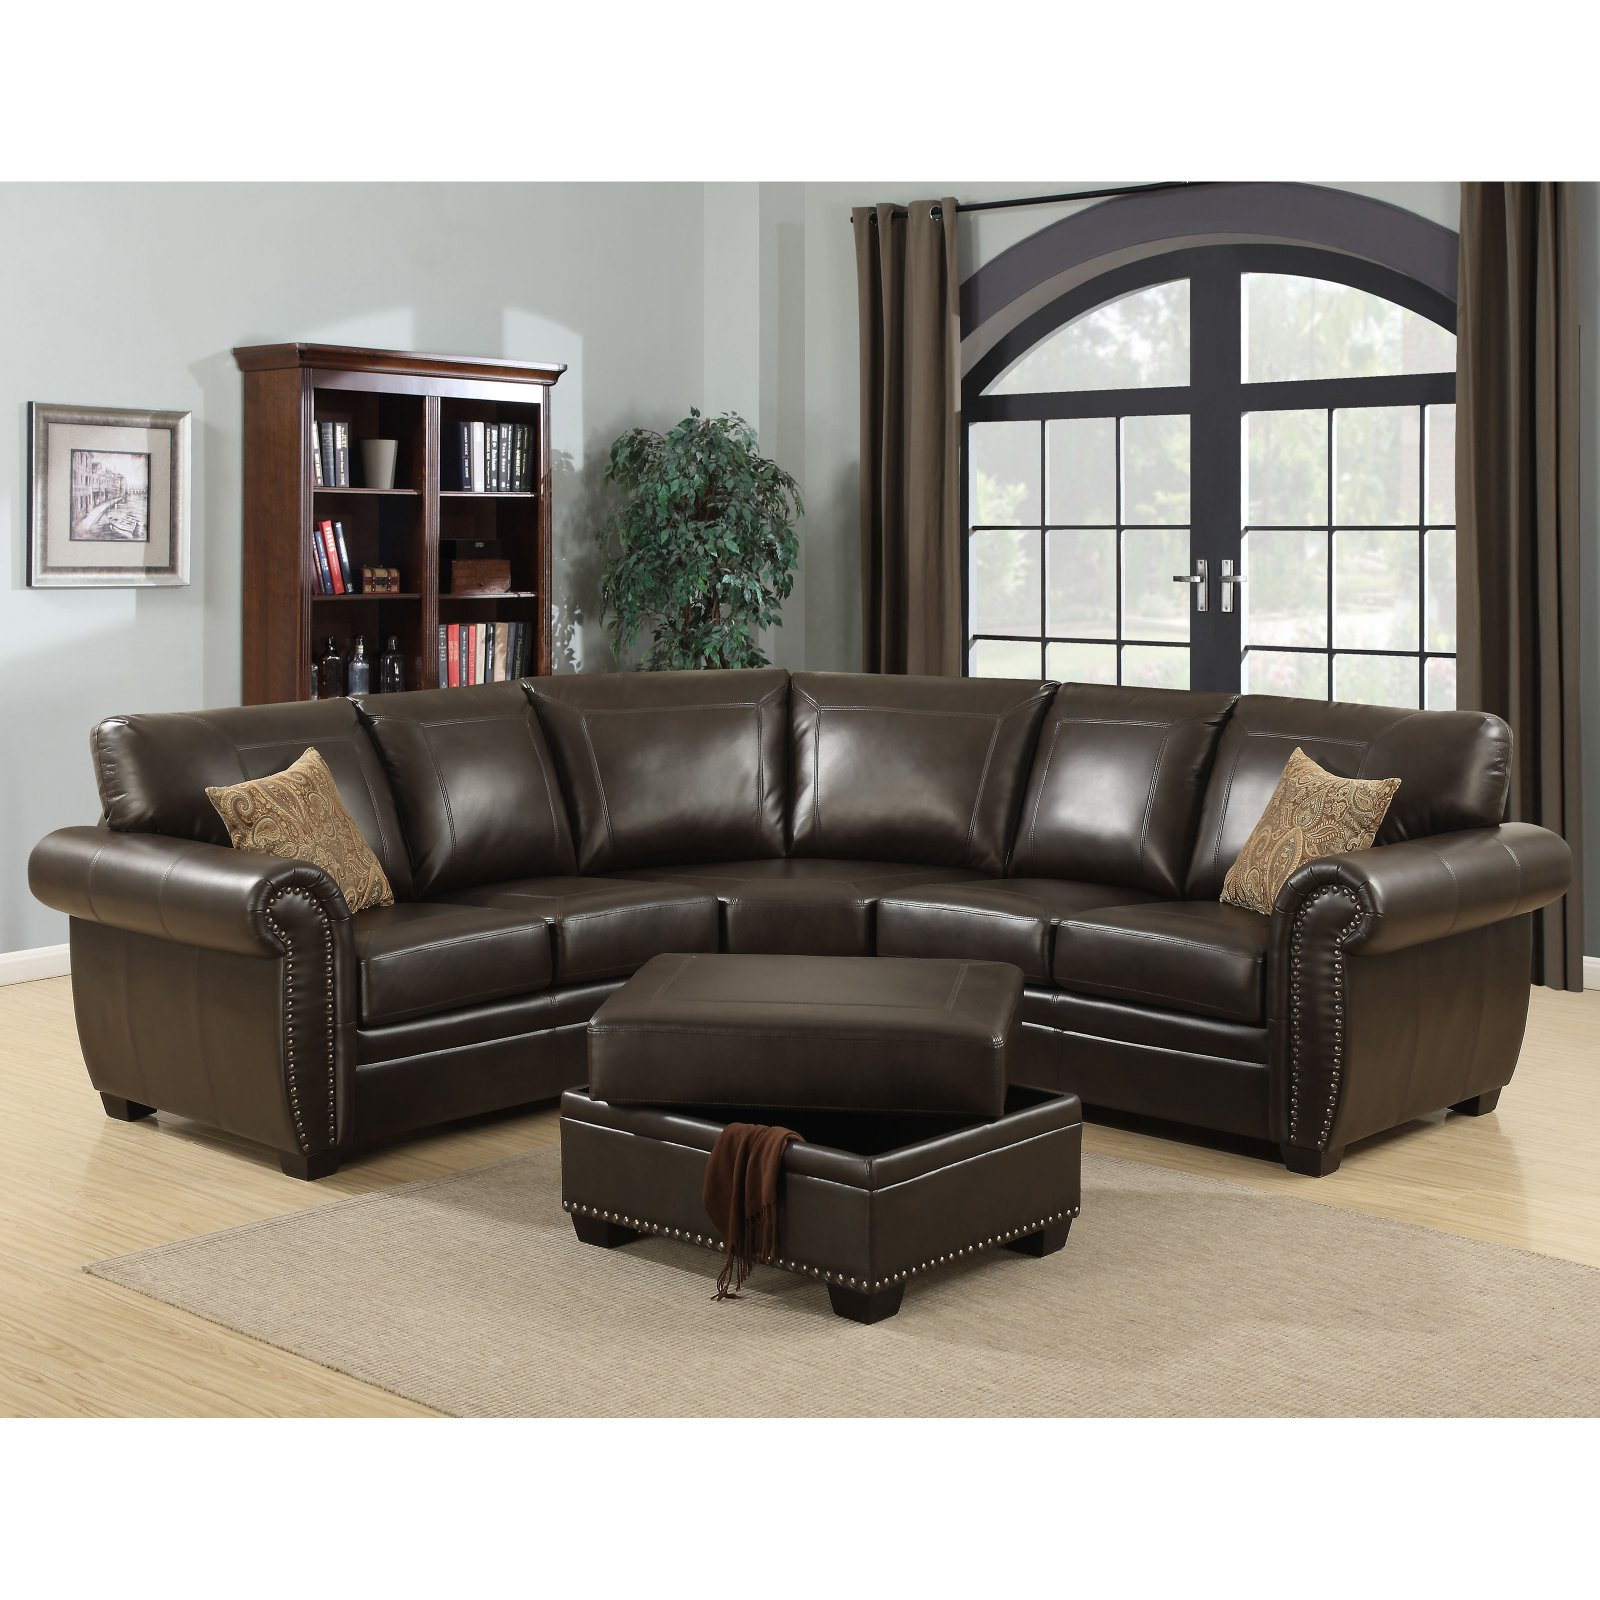 Christies Home Living Louis Collection 3 Piece Living Room Sectional with Ottoman